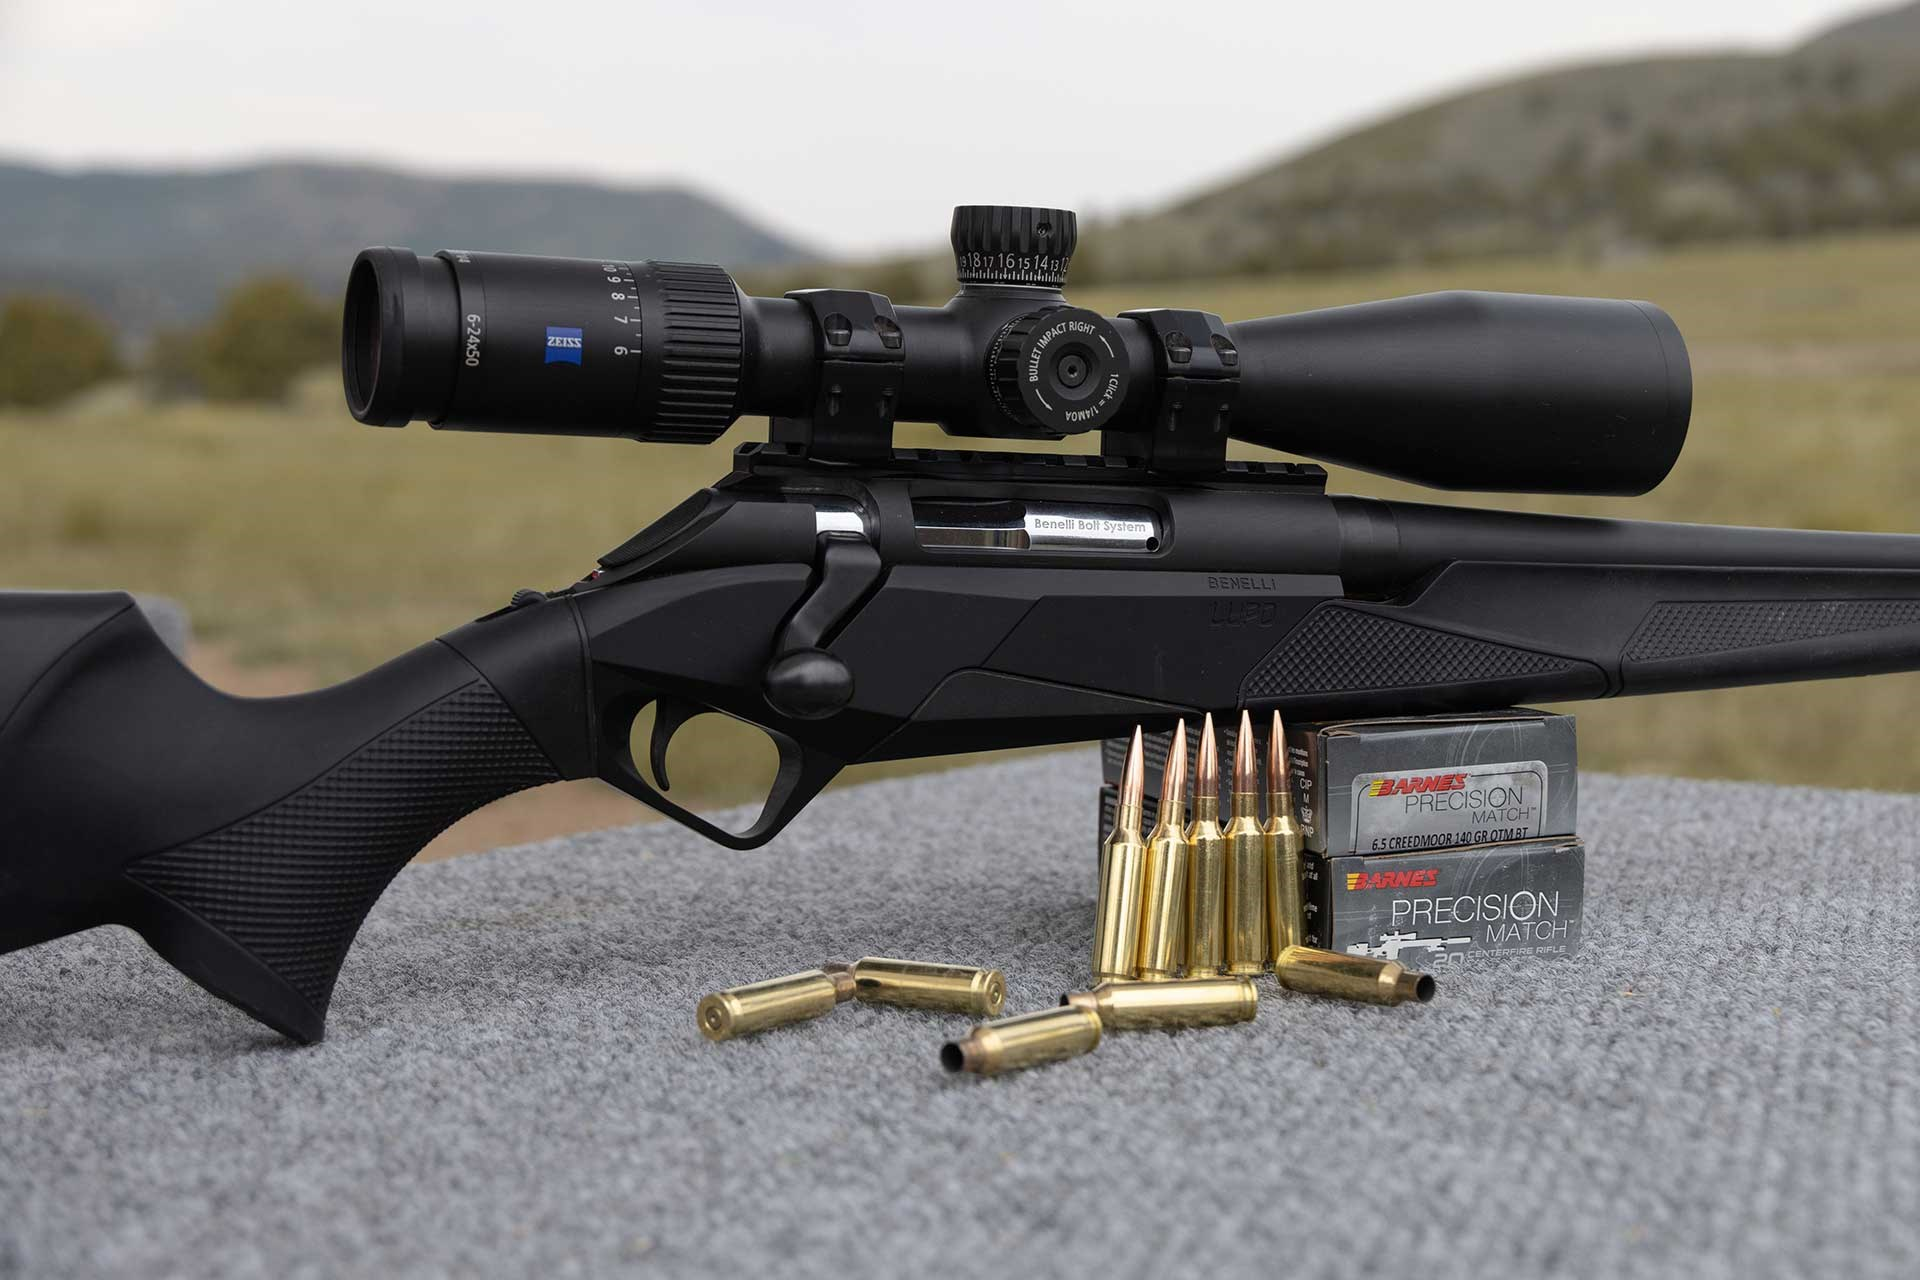 A Benelli Lupo rifle sitting on a shooting bench next to Barnes Precision ammunition.